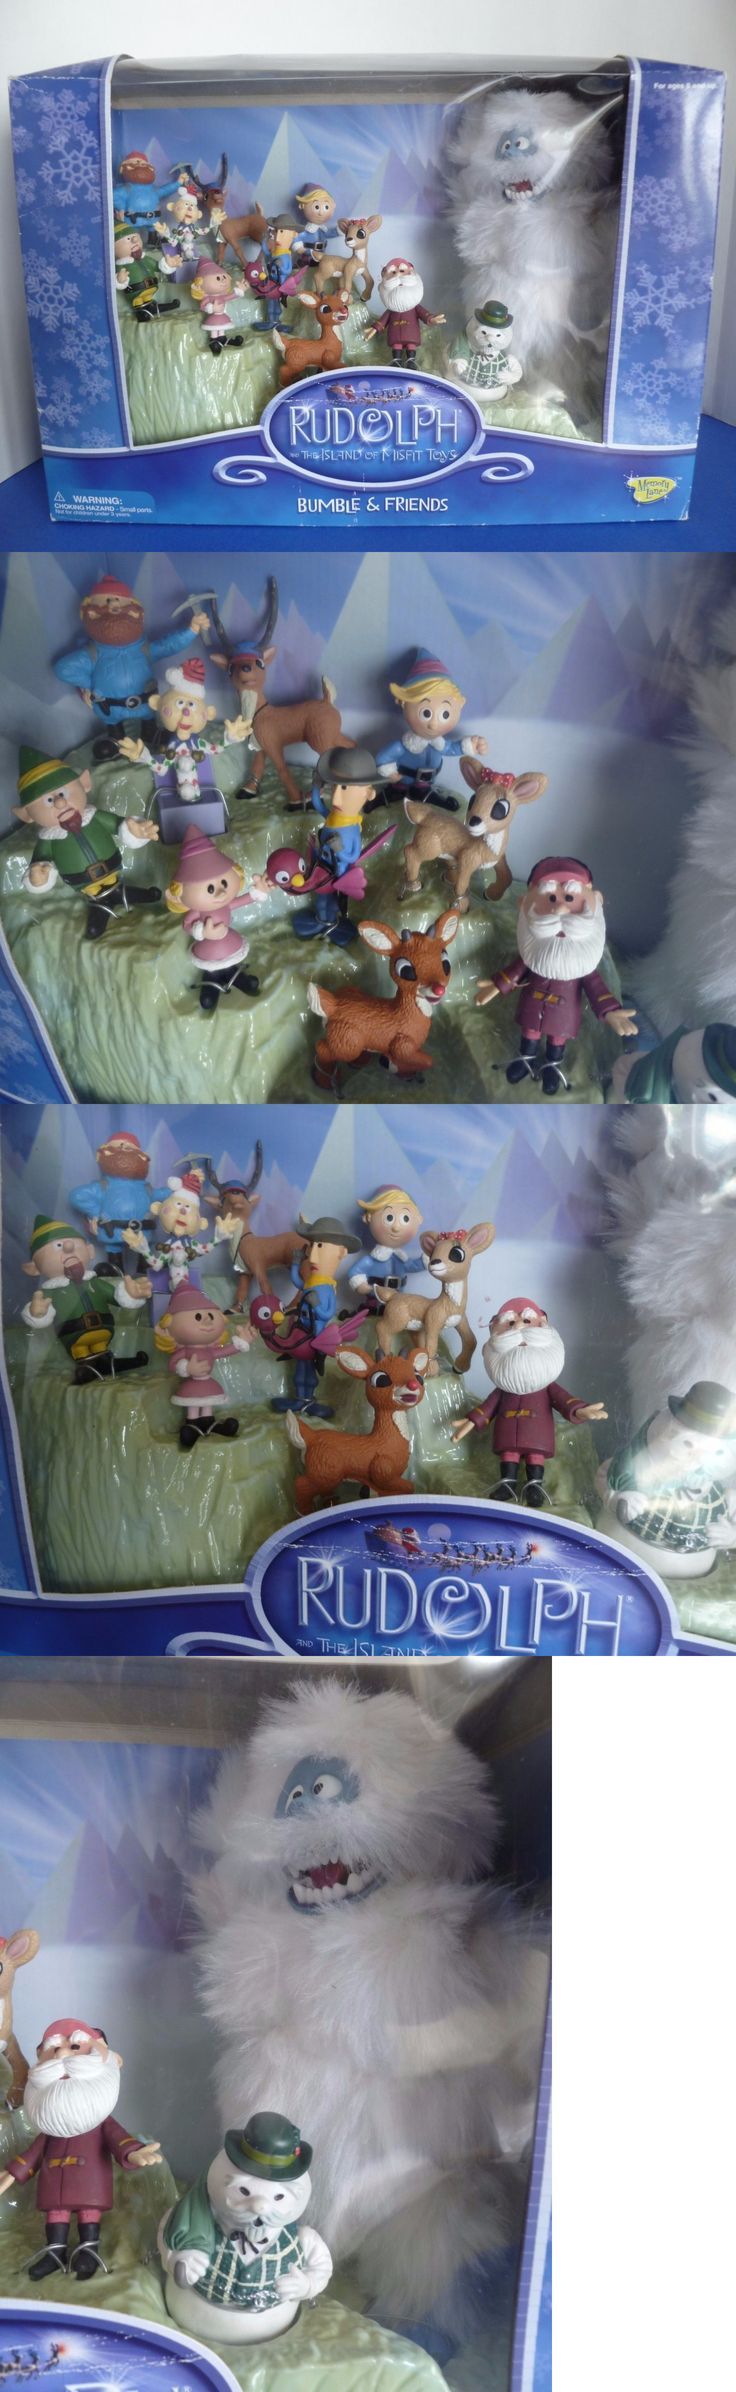 Rudolph 95252: Rudolph Island Of Misfit Toys Bumble And Friends Figure Set 2002. New In Box -> BUY IT NOW ONLY: $89.99 on eBay!